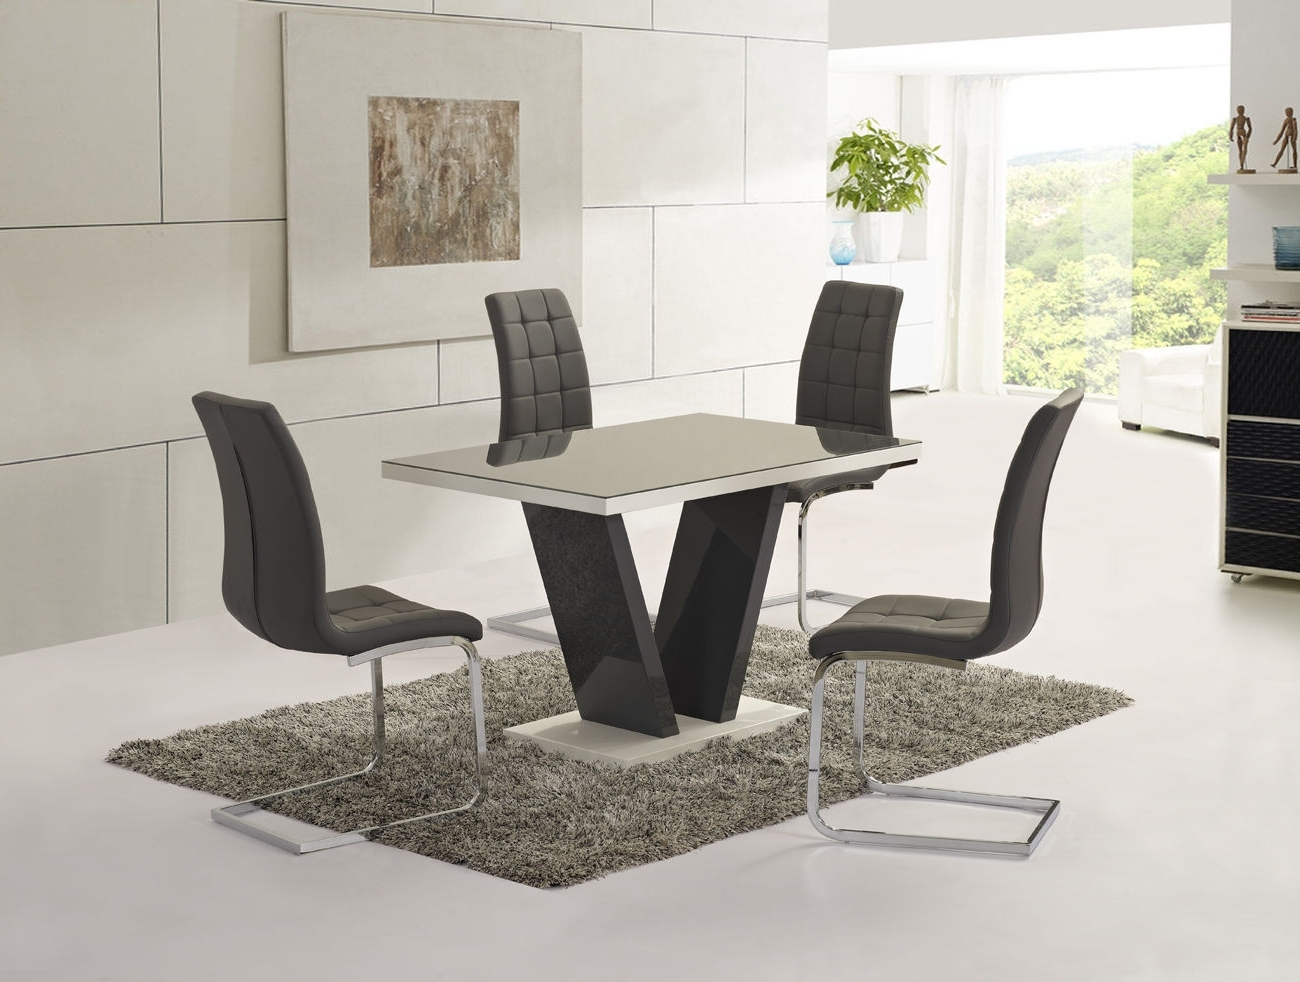 White Gloss Dining Tables And 6 Chairs Regarding Most Up To Date Ga Vico Gloss Grey Glass Top Designer 160Cm Dining Set – 4 6 Grey (View 4 of 25)